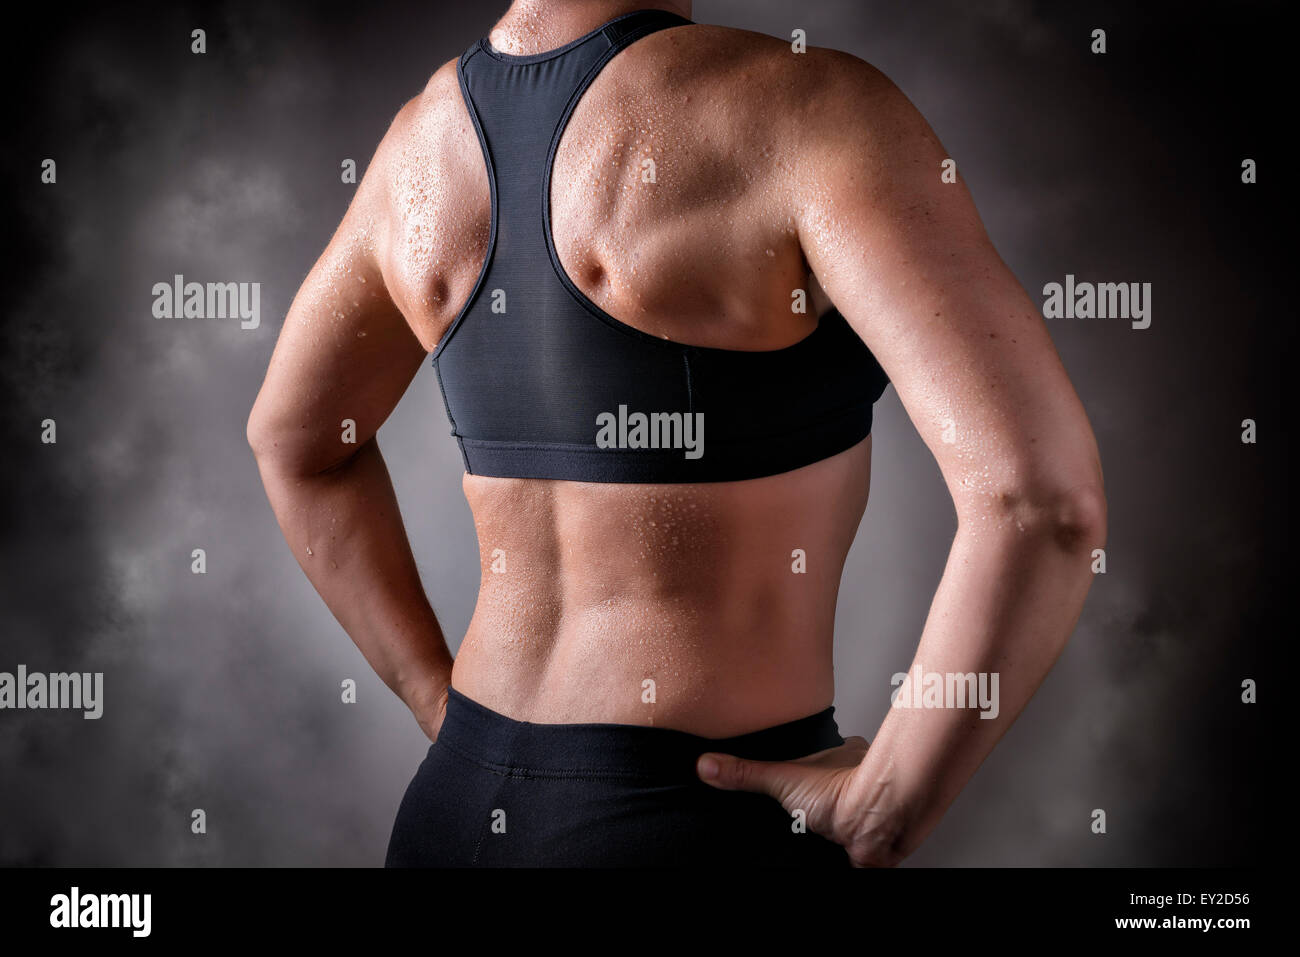 Female Back Muscles Stock Photos Female Back Muscles Stock Images